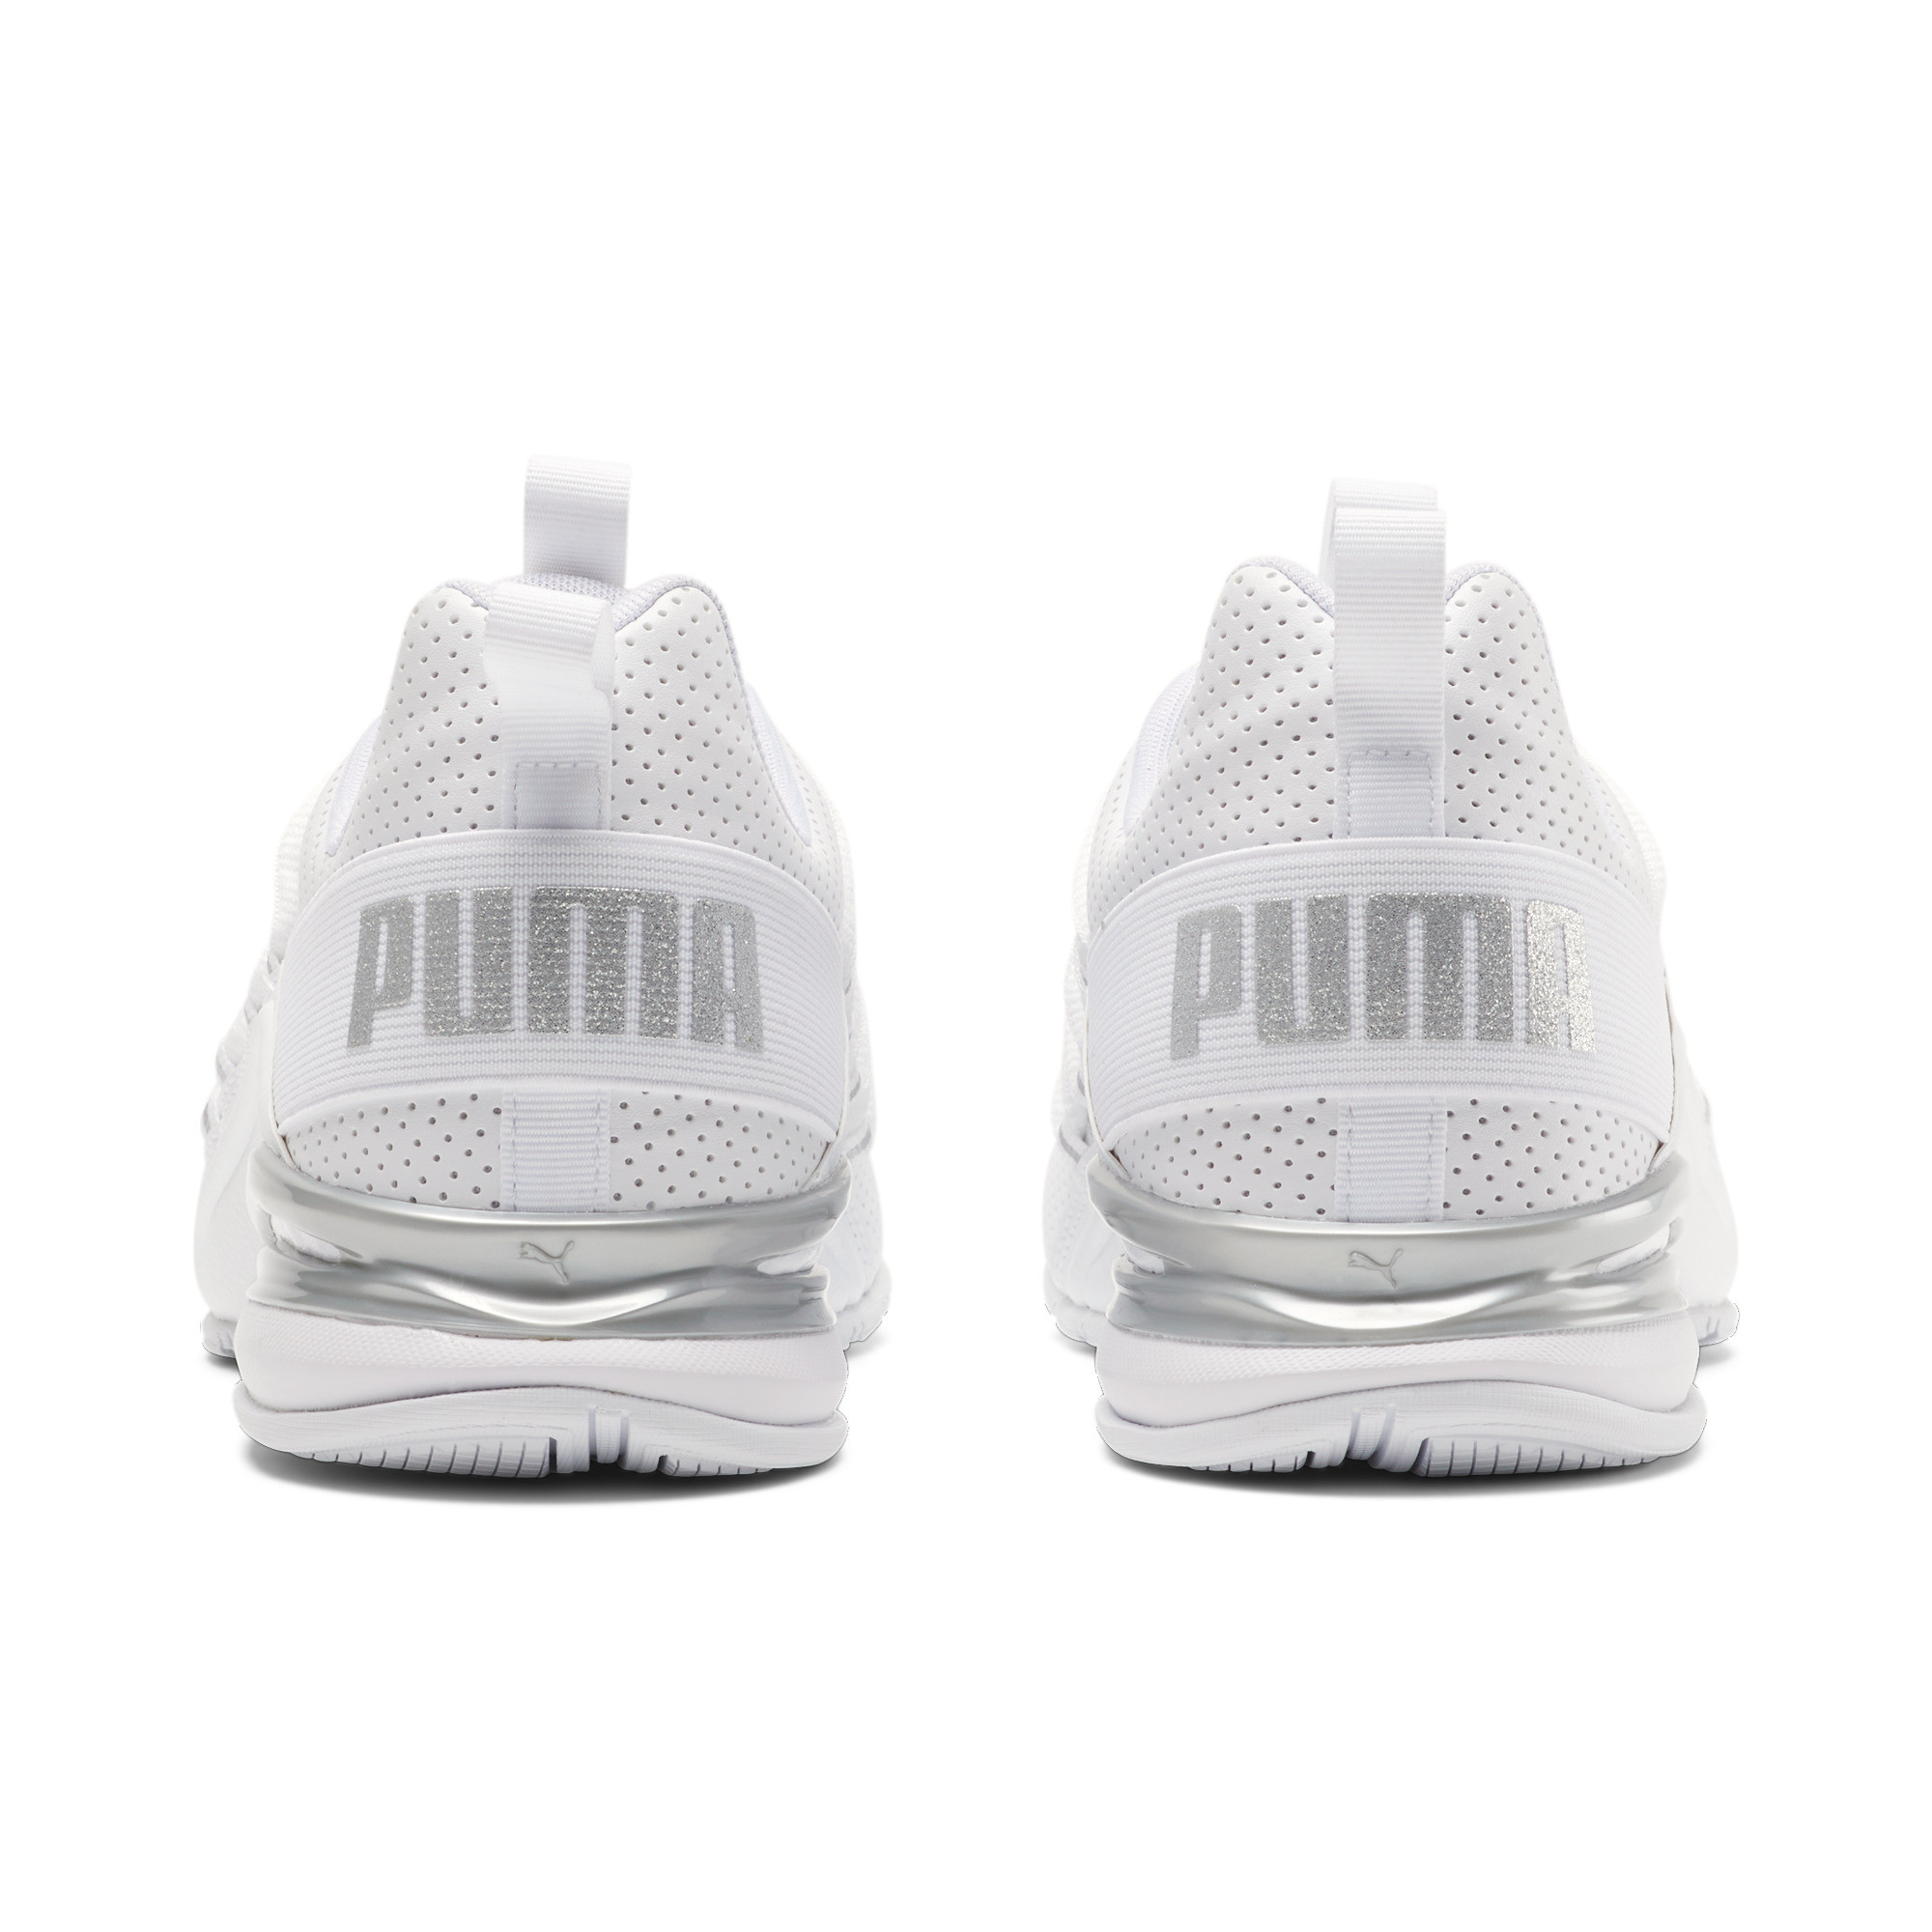 PUMA-Men-039-s-Axelion-Perf-Training-Shoes thumbnail 21